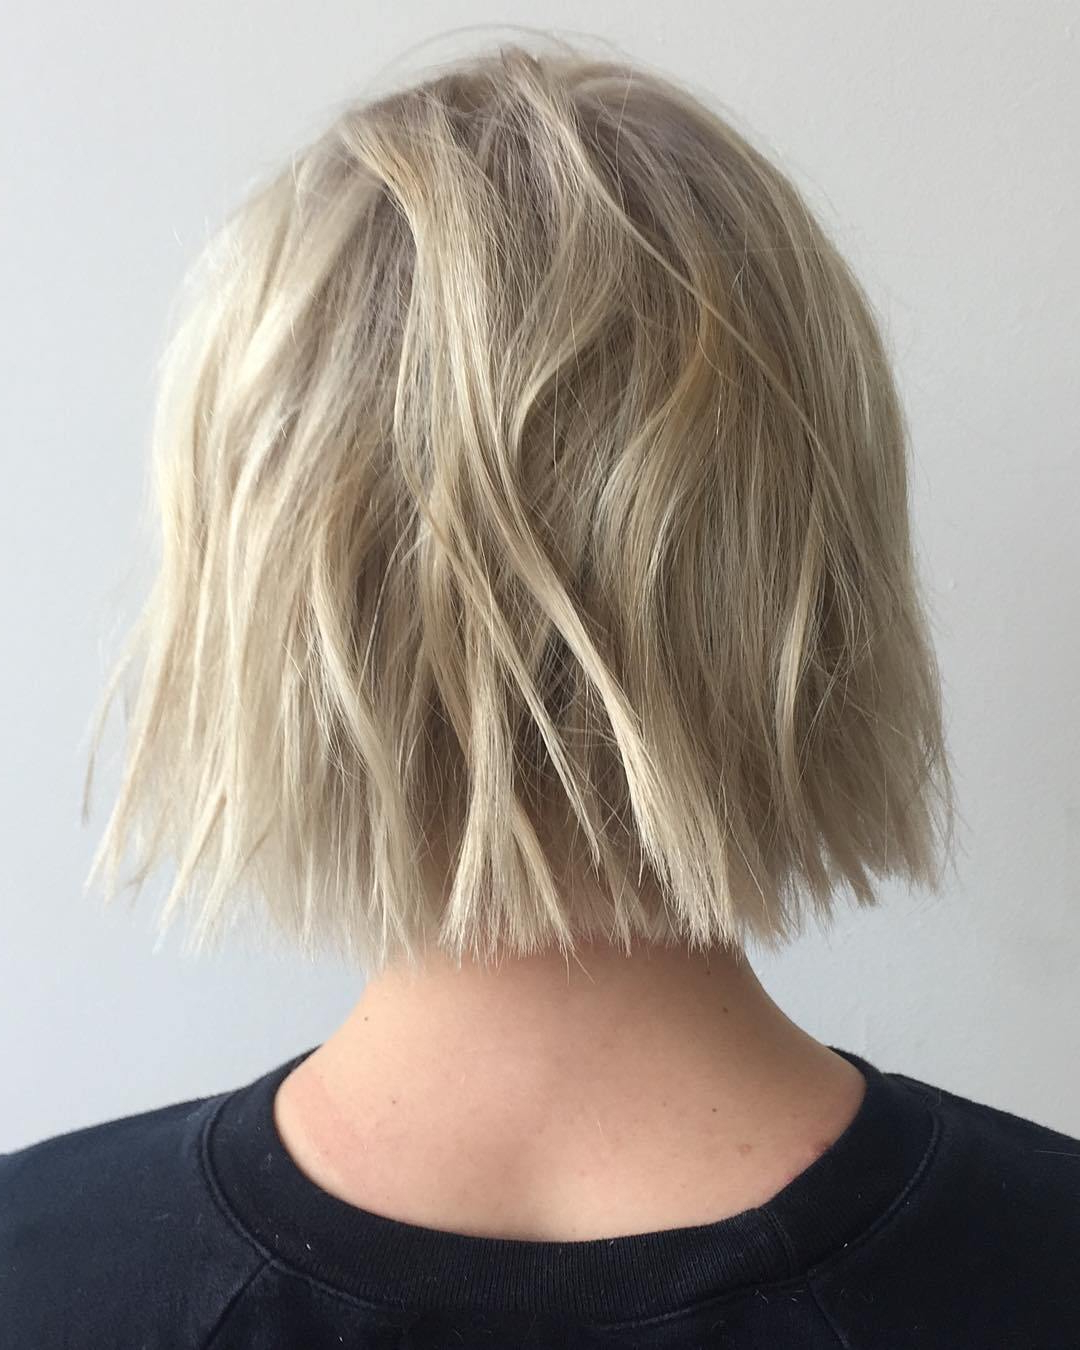 50 Choppy Bobs Too Damn Good Not To Copy – Hair Adviser Inside Choppy Blonde Bob Hairstyles With Messy Waves (View 8 of 20)